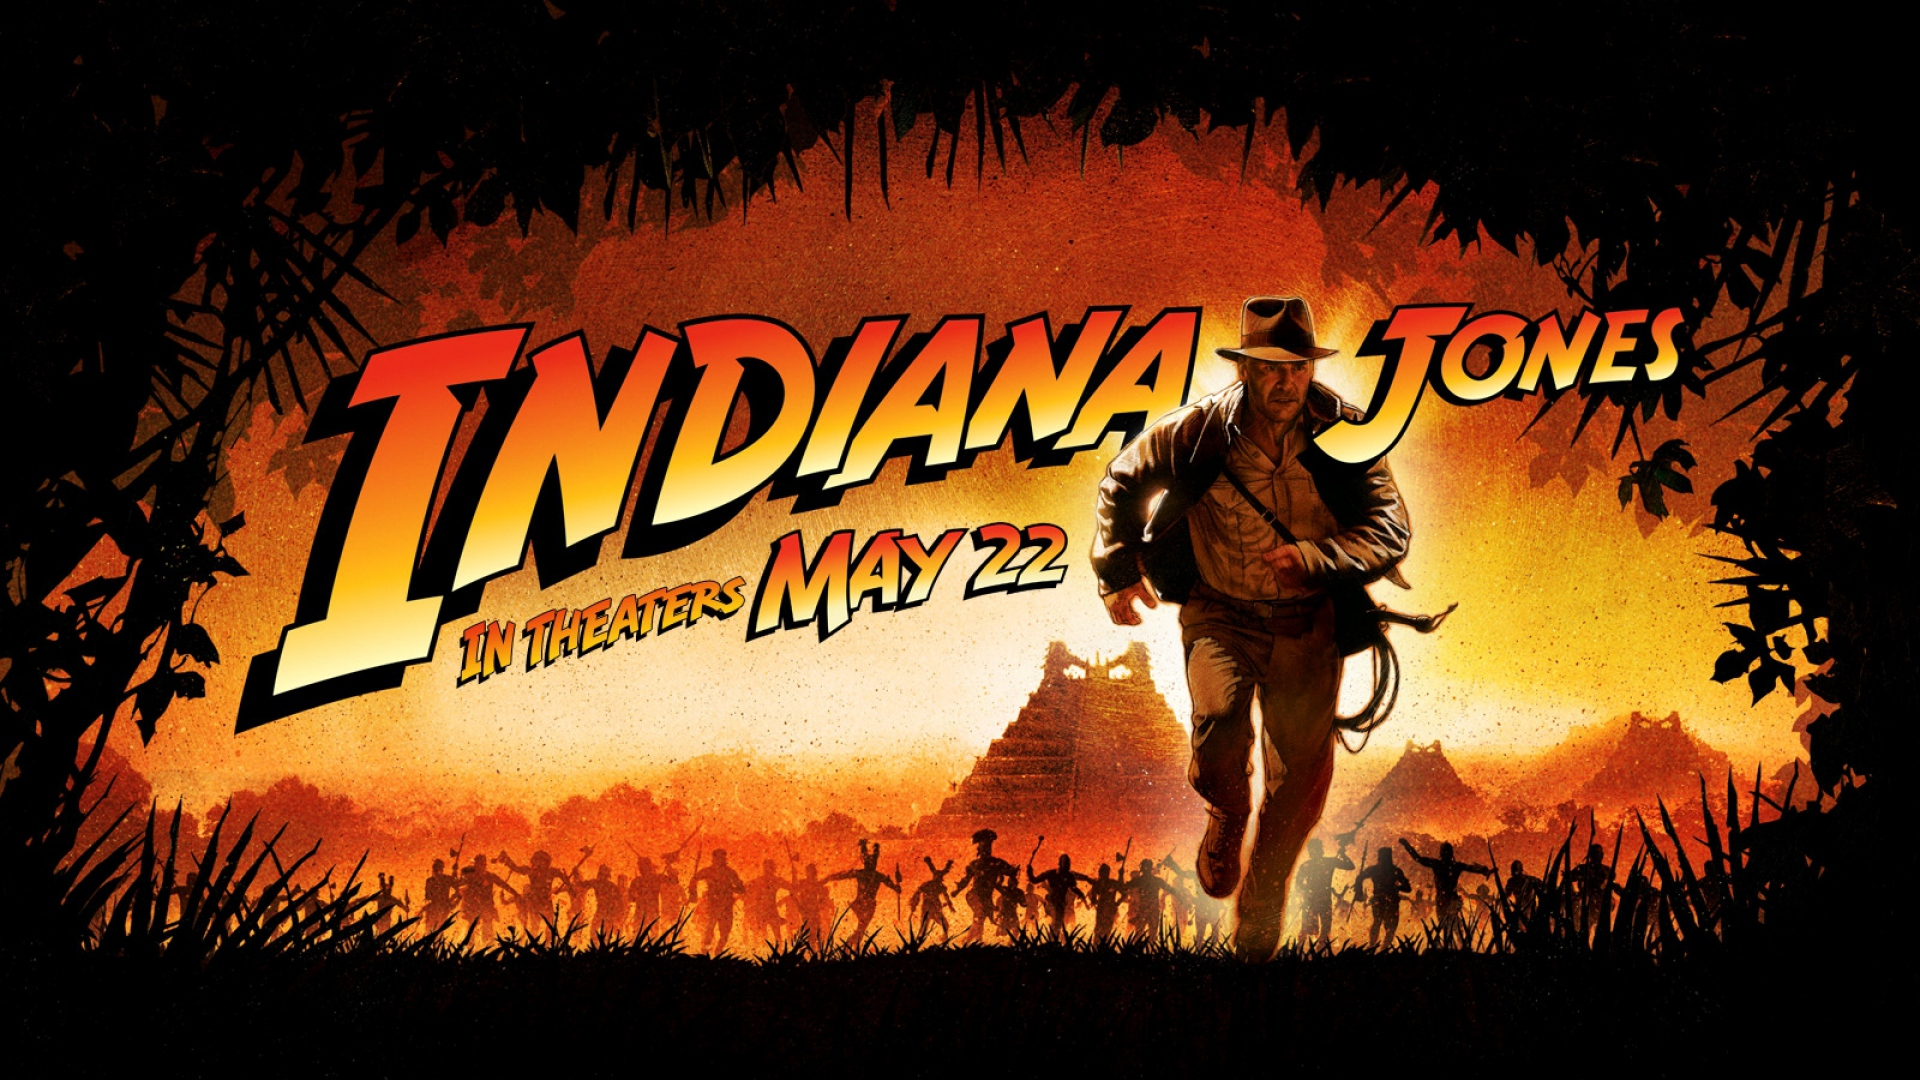 Earnings Disclaimer >> Download Wallpaper 1920x1080 indiana jones, harrison ford, actor Full HD 1080p HD Background